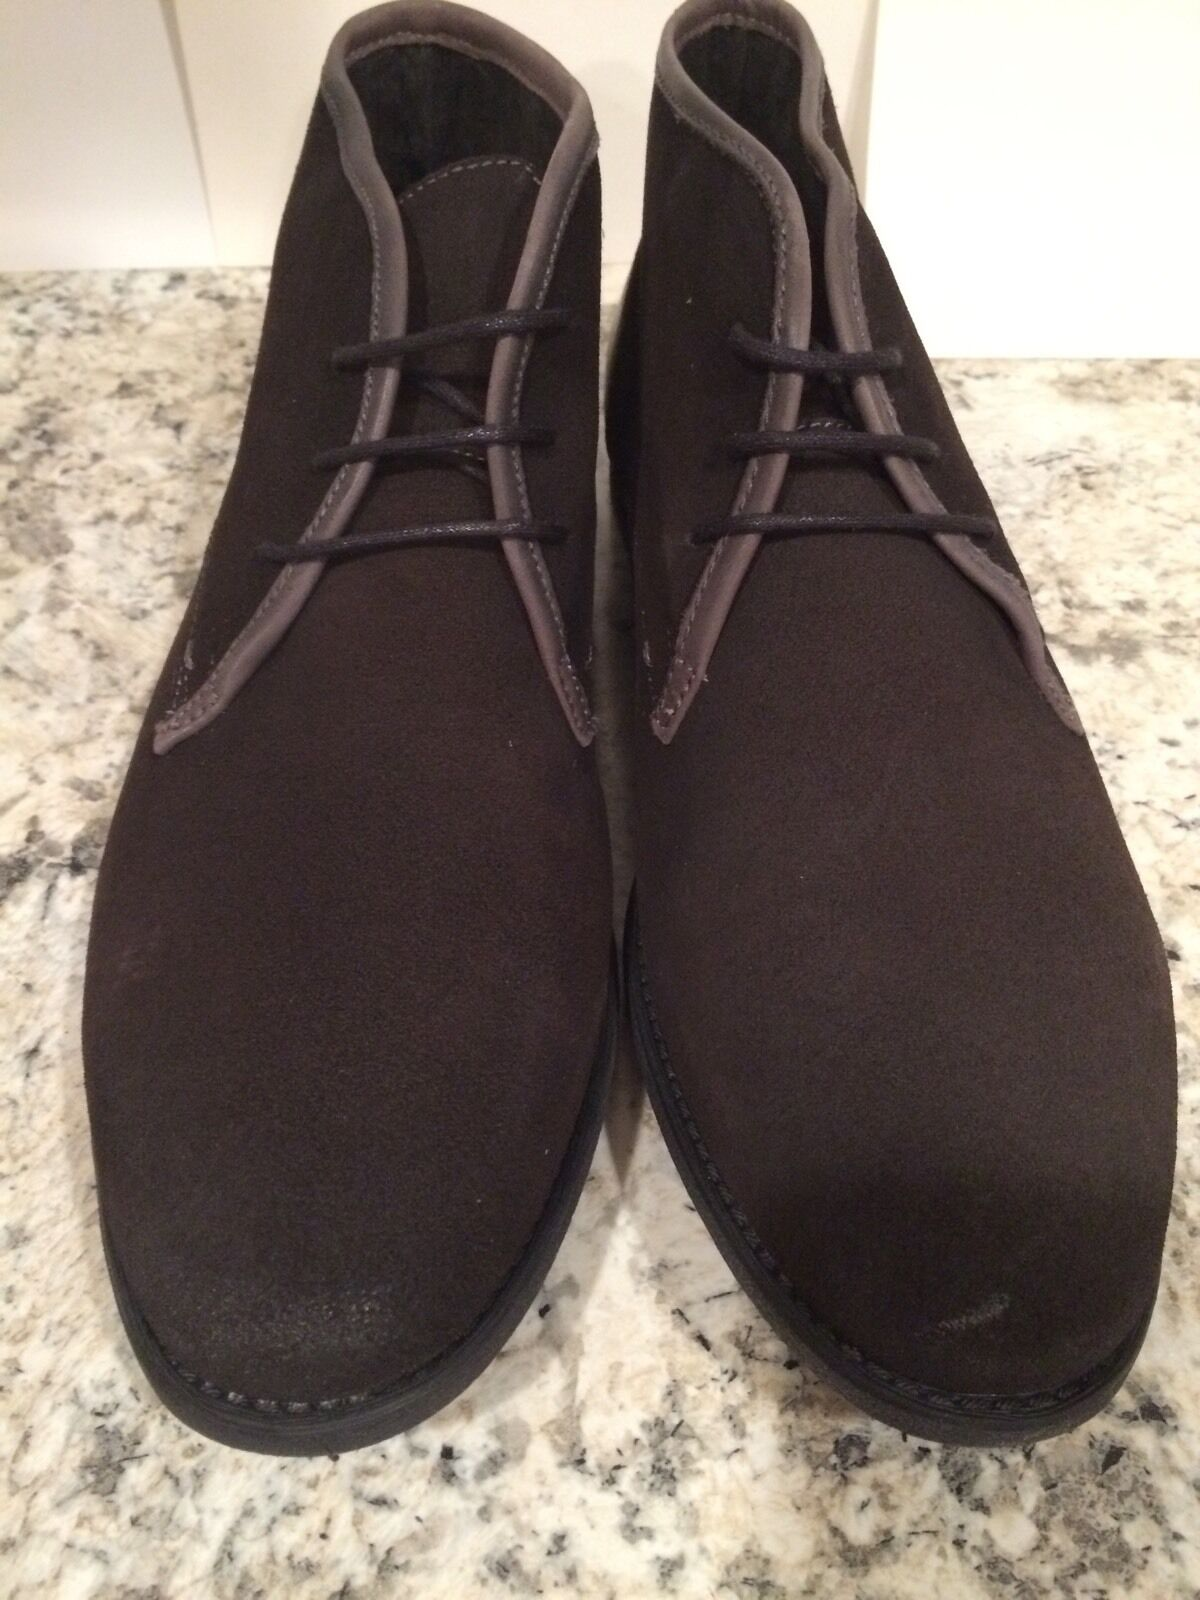 Made Cam Newton Cary Cary Newton Uomo Ankle Stivali Chukka Suede Lace Up Dark Grey 9 D  160 79f7ad